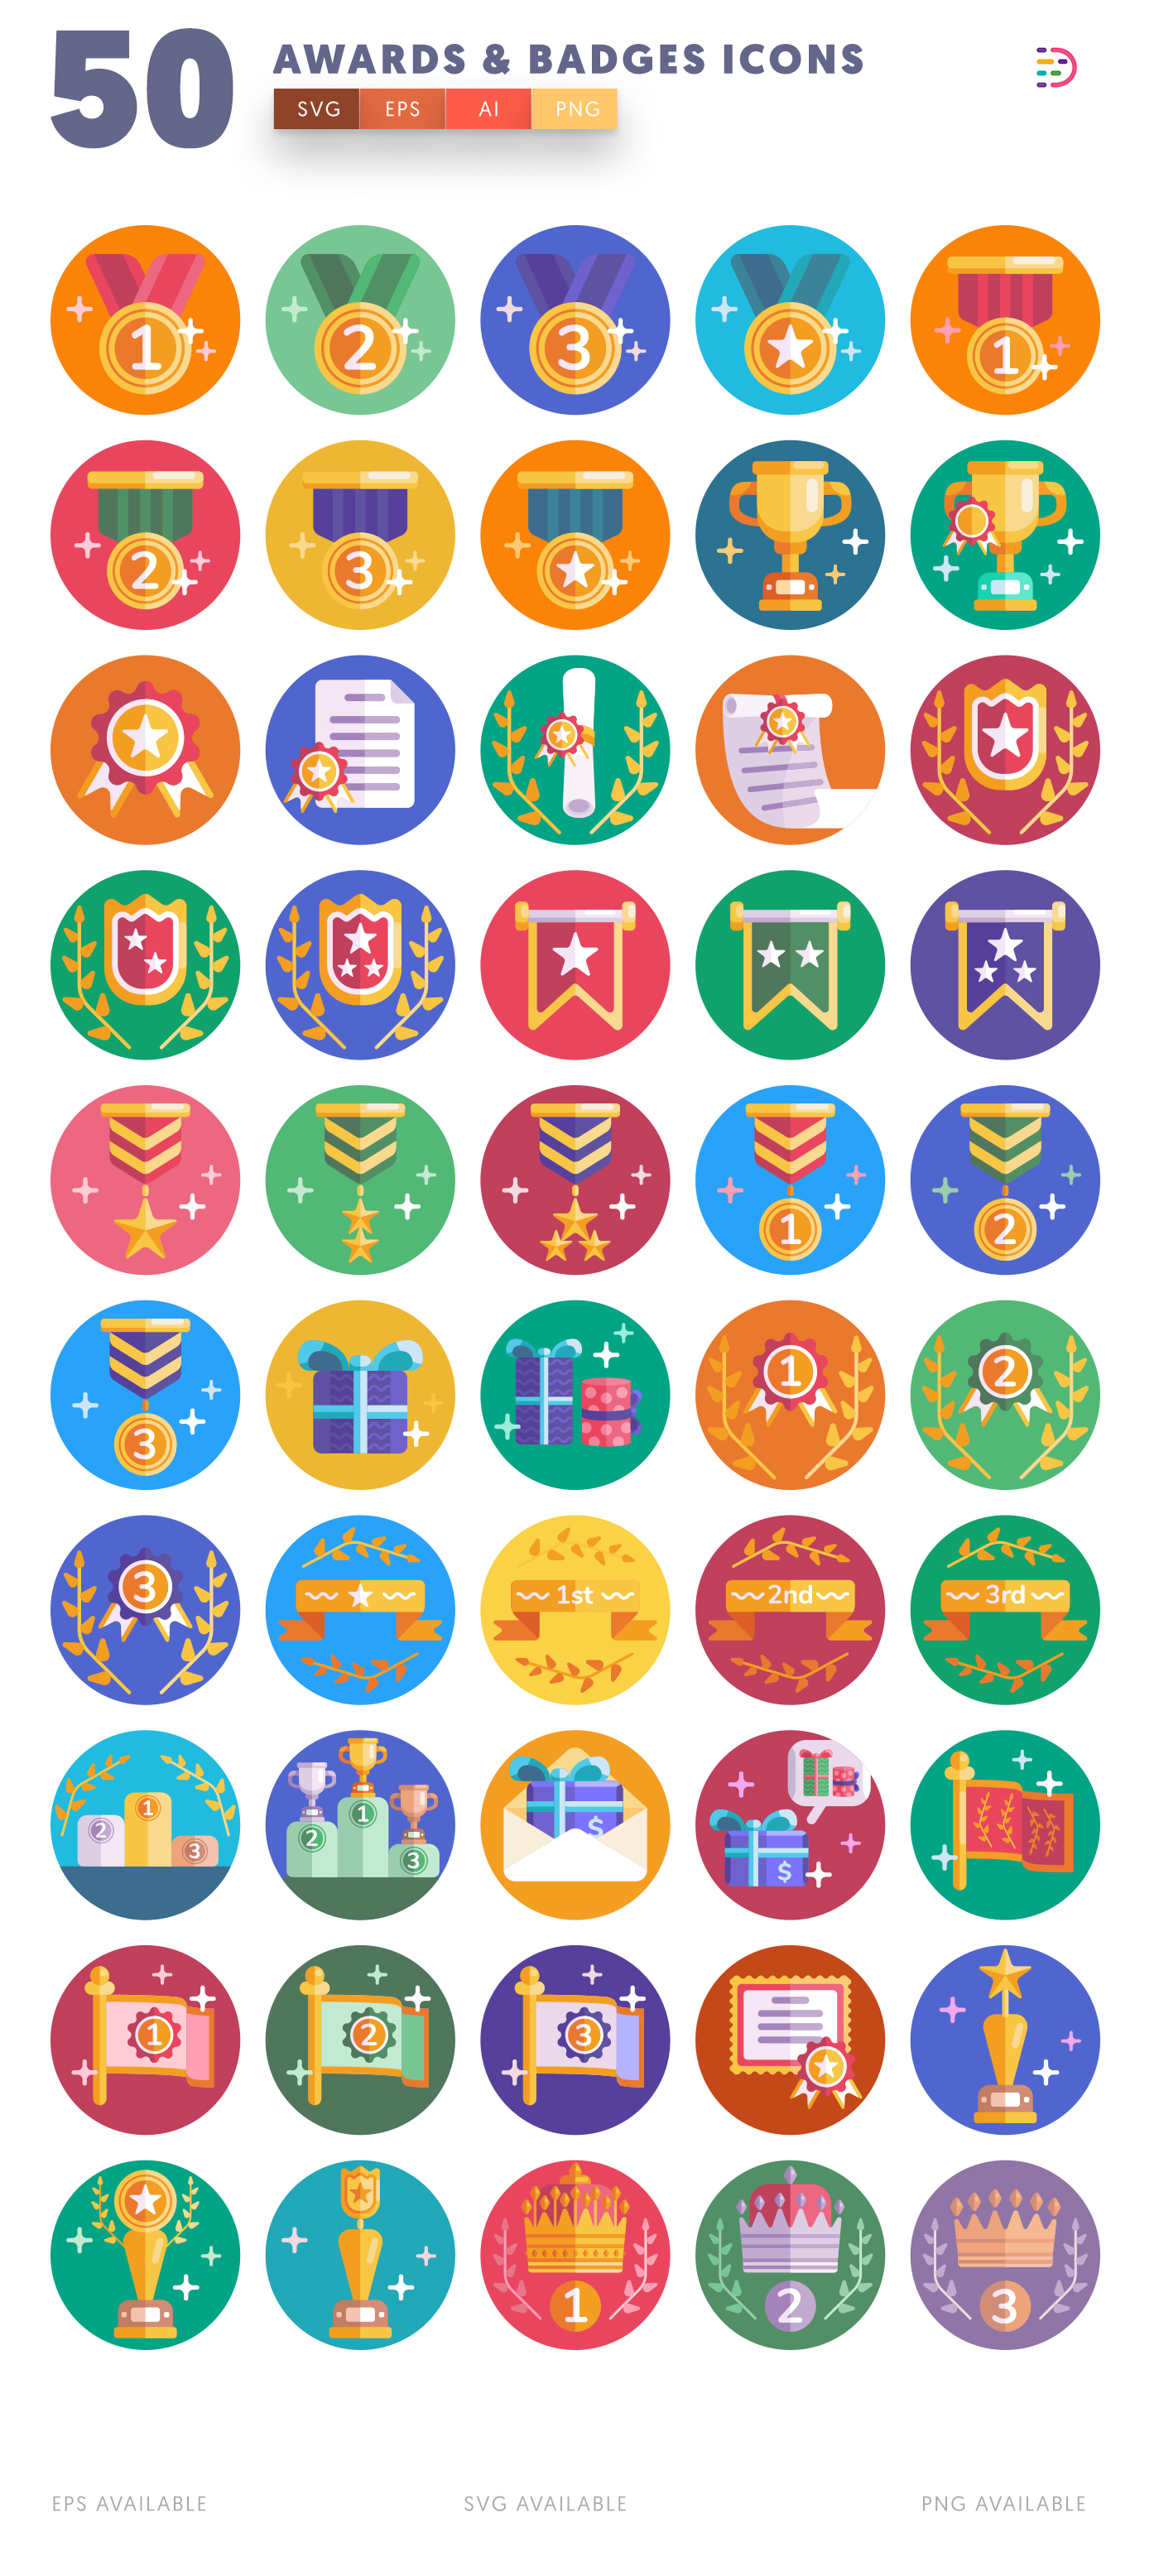 Full vector Awards & Badges Icons